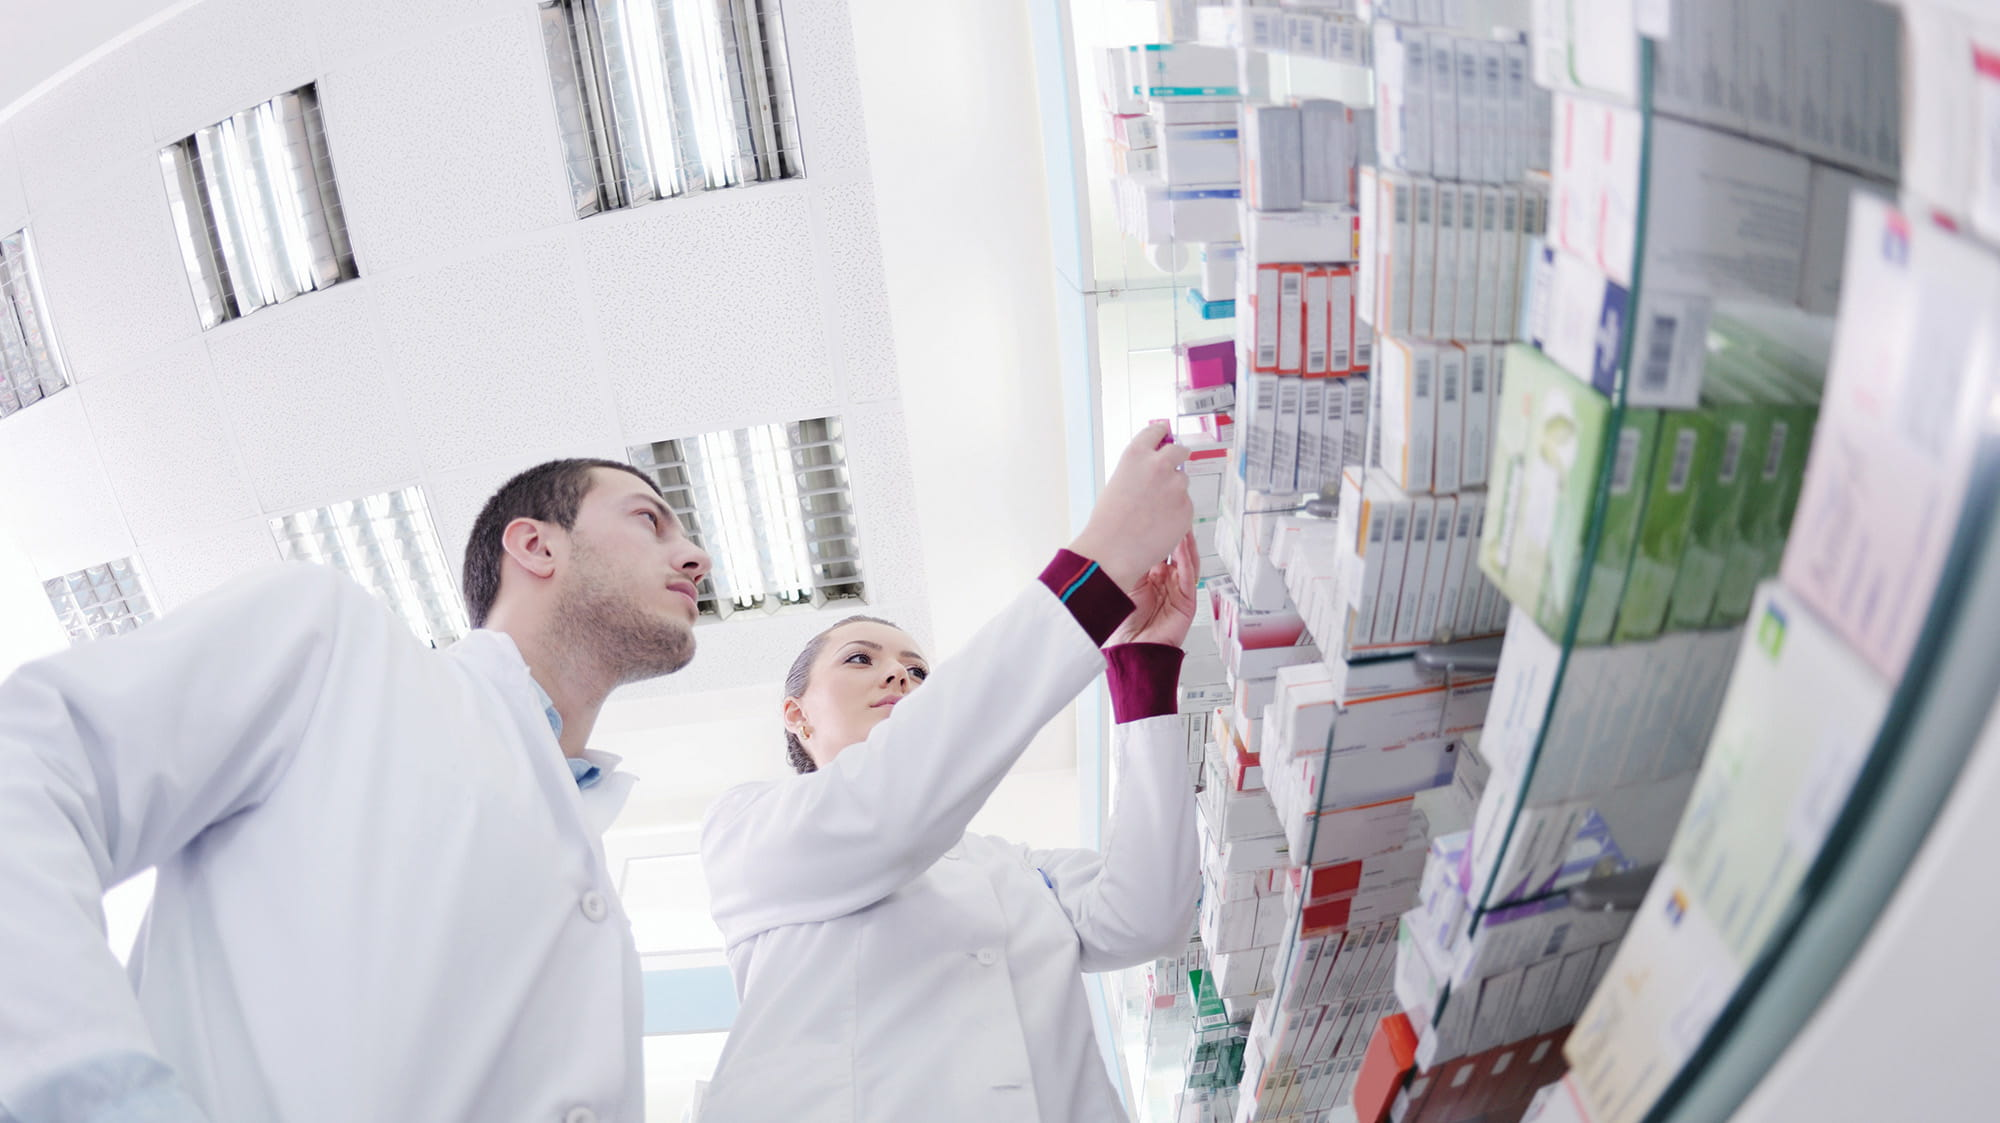 Two pharmacy students in lab coats looking at shelves of pharmaceutical supplies